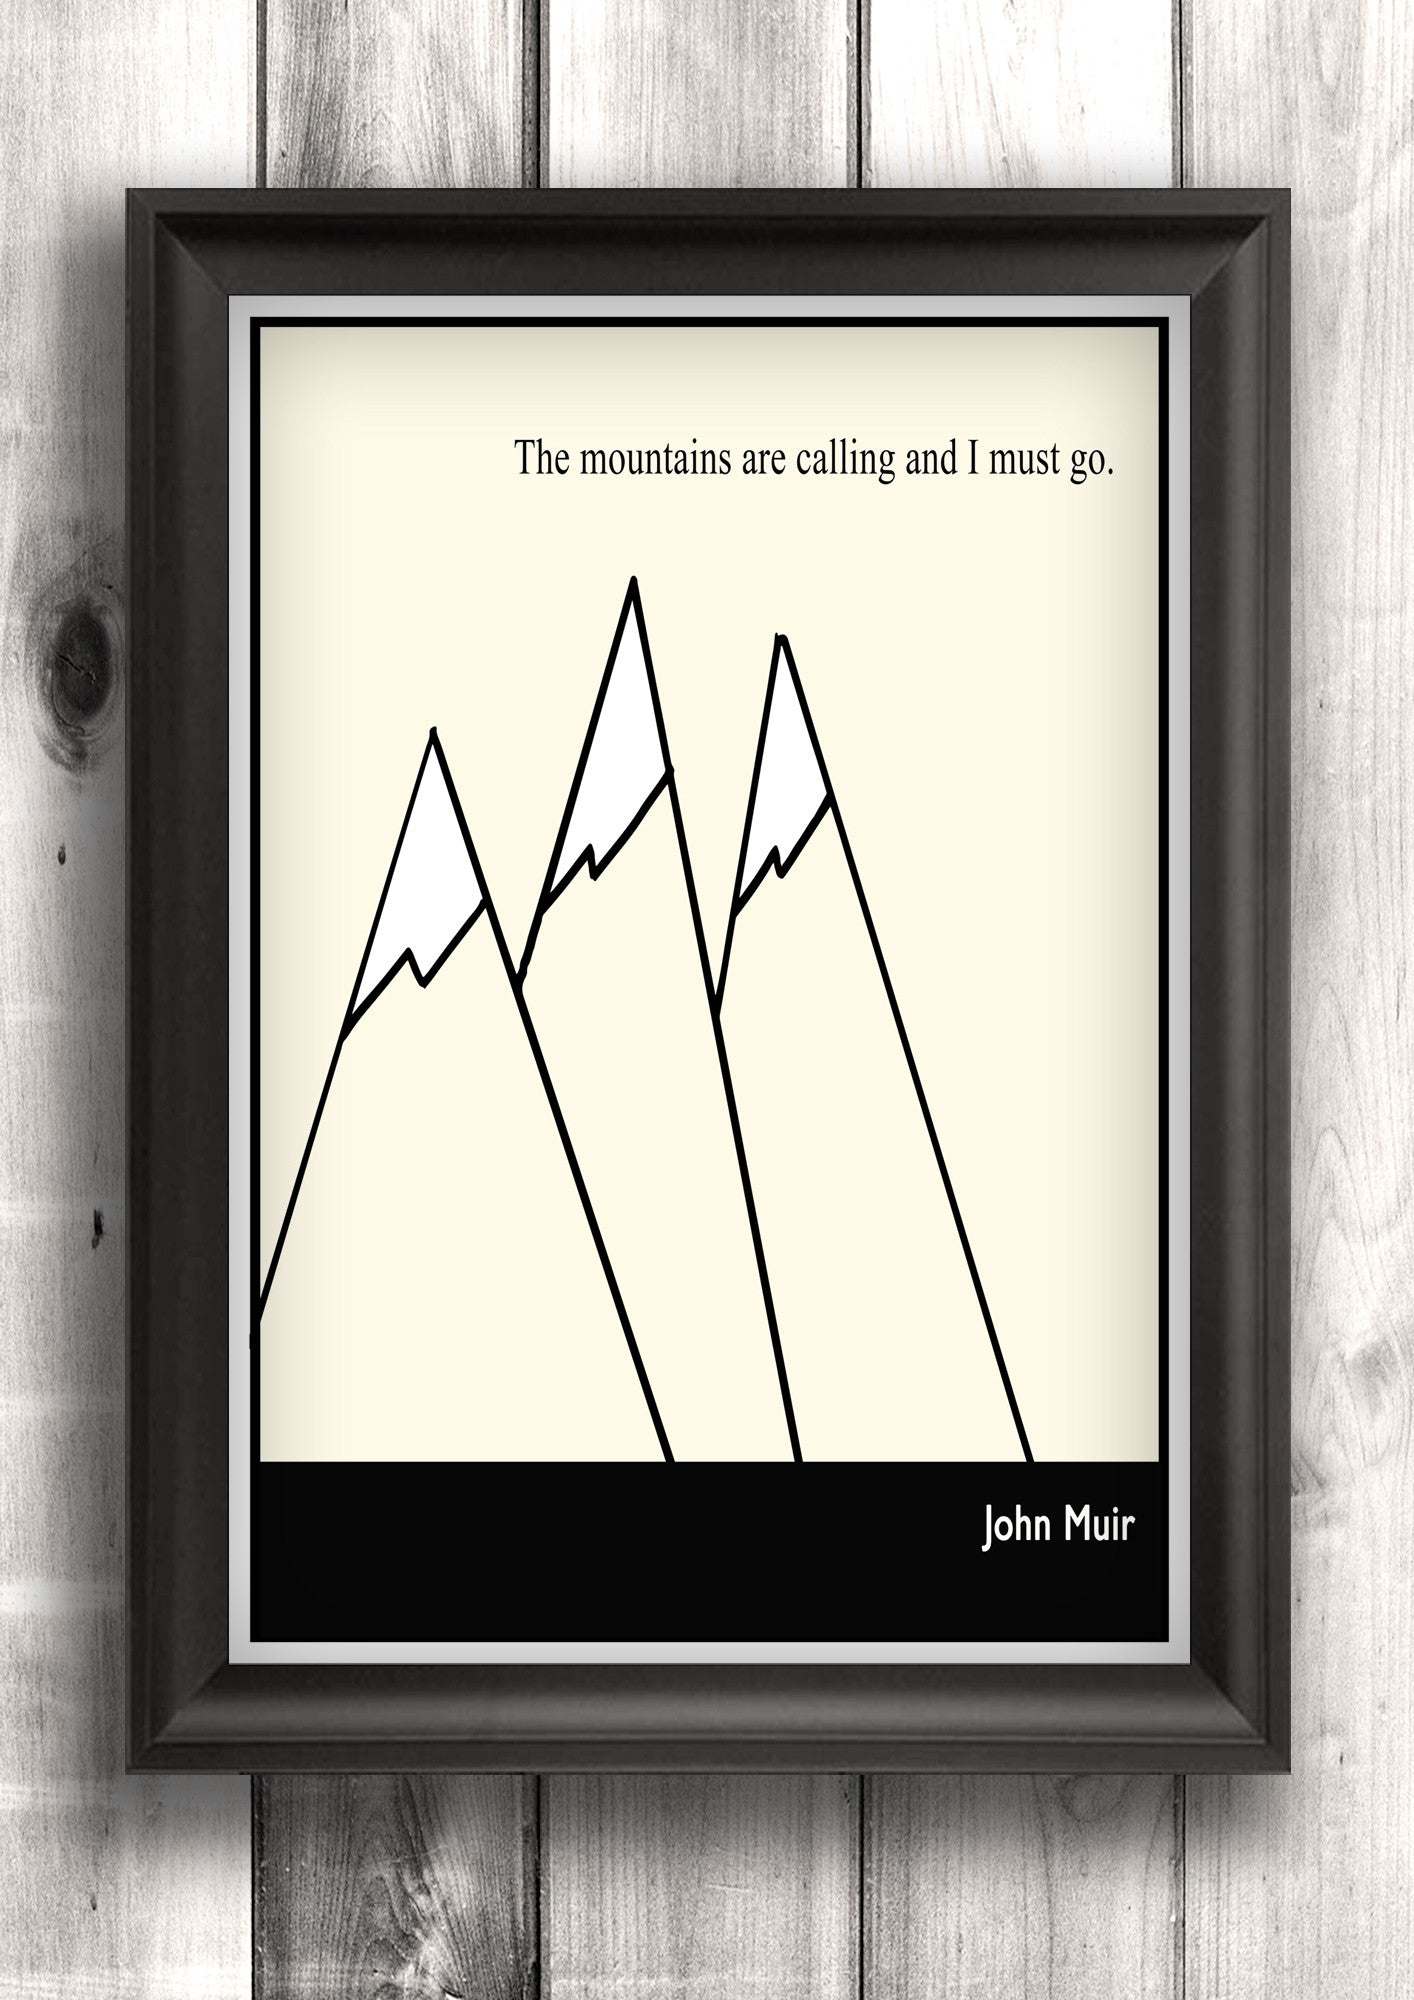 Literary Art - John Muir Quote, Minimalist Art Poster, Black and White - Fine art letterpress poster